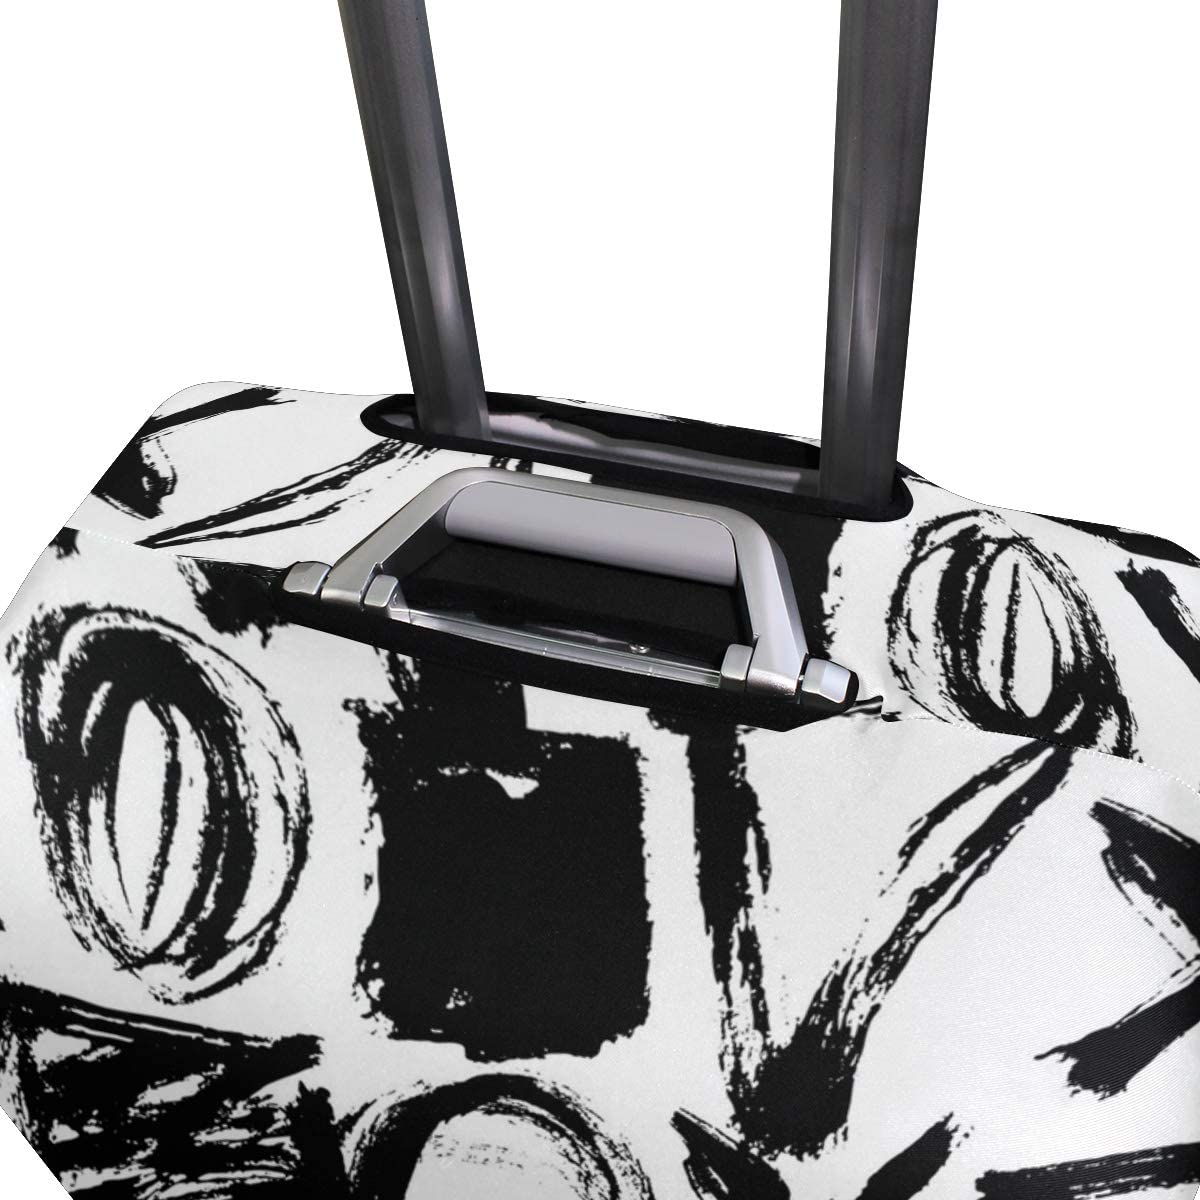 Mathematical Algorithm Geometric Traveler Lightweight Rotating Luggage Protector Case Can Carry With You Can Expand Travel Bag Trolley Rolling Luggage Protector Case